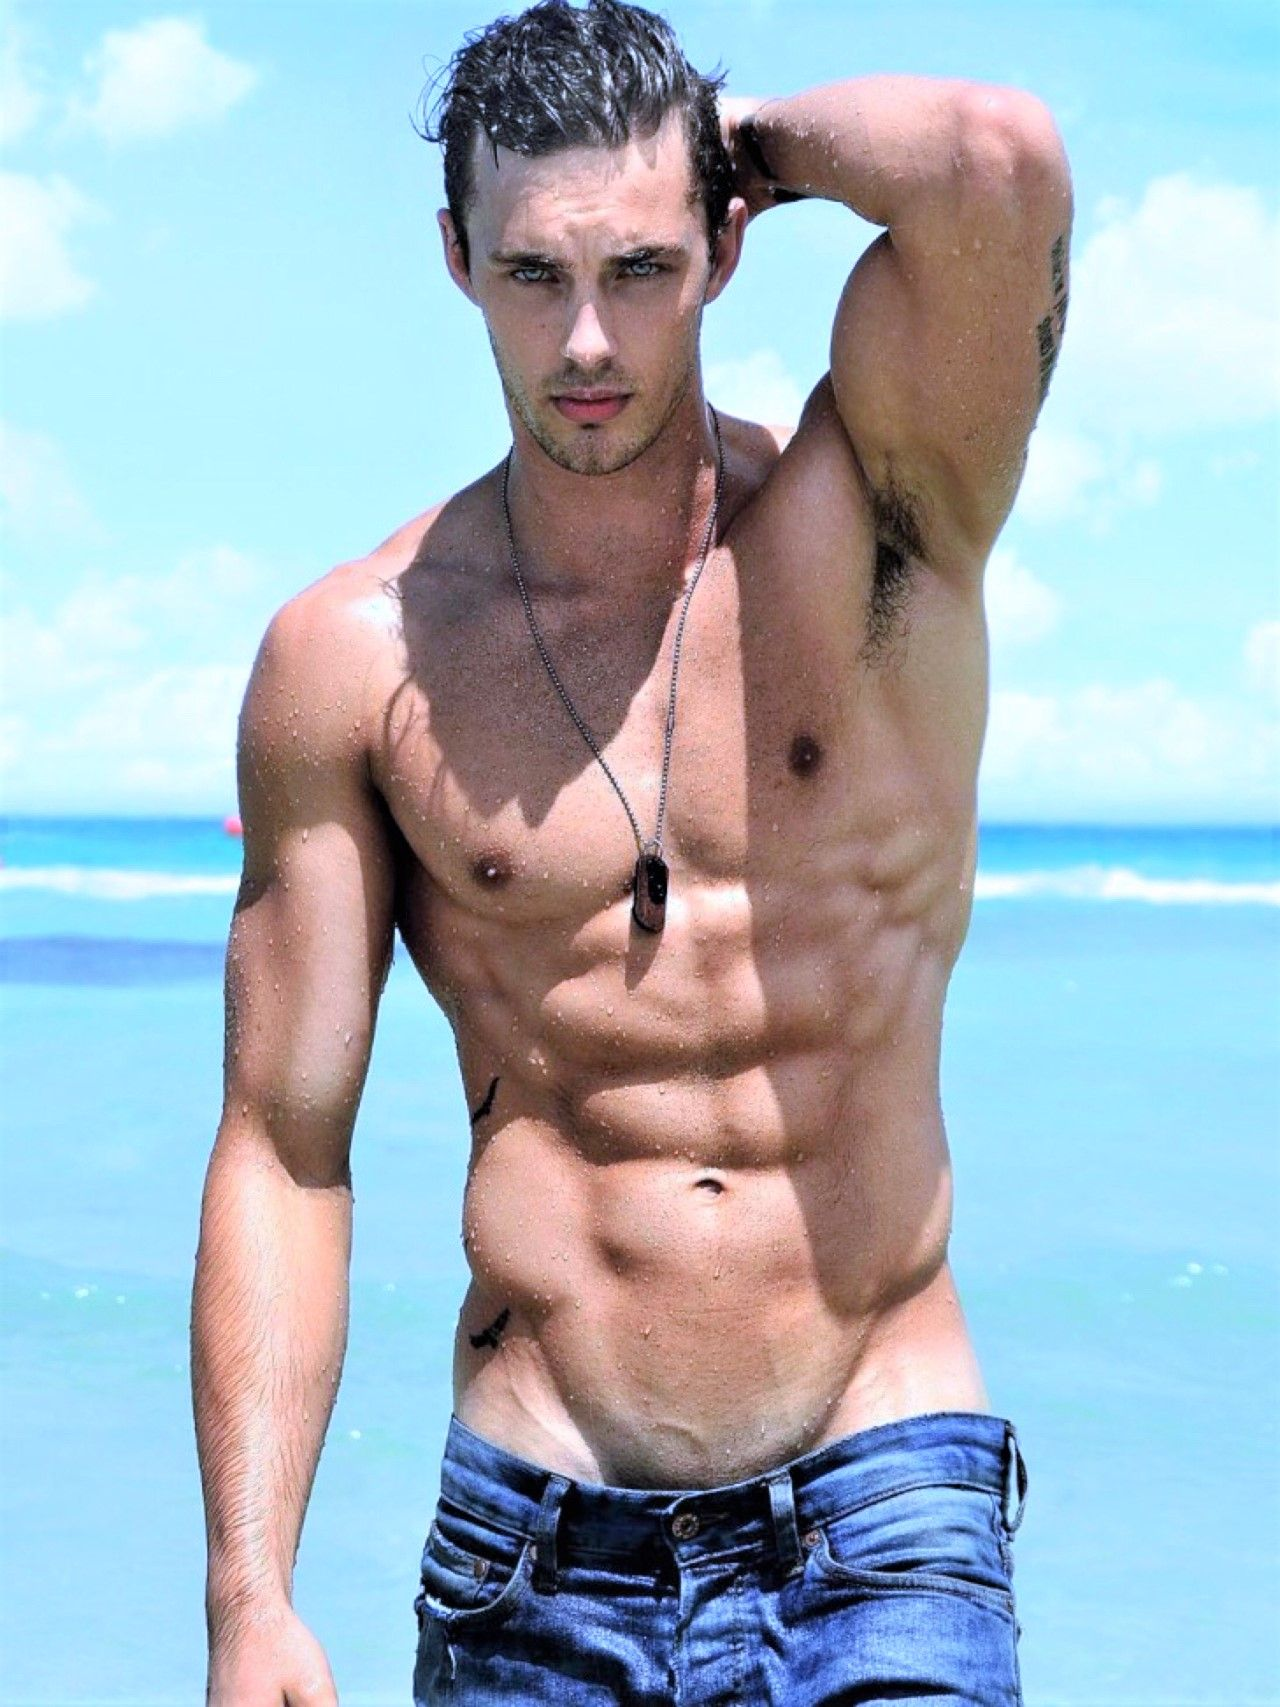 Christian Hogue Guys In Their Jeans 2018 Pinterest Hot Lgs Slim Fit Youth Boy Giant Leap Merah Xl Shirtless Men Pics Male Physique Real